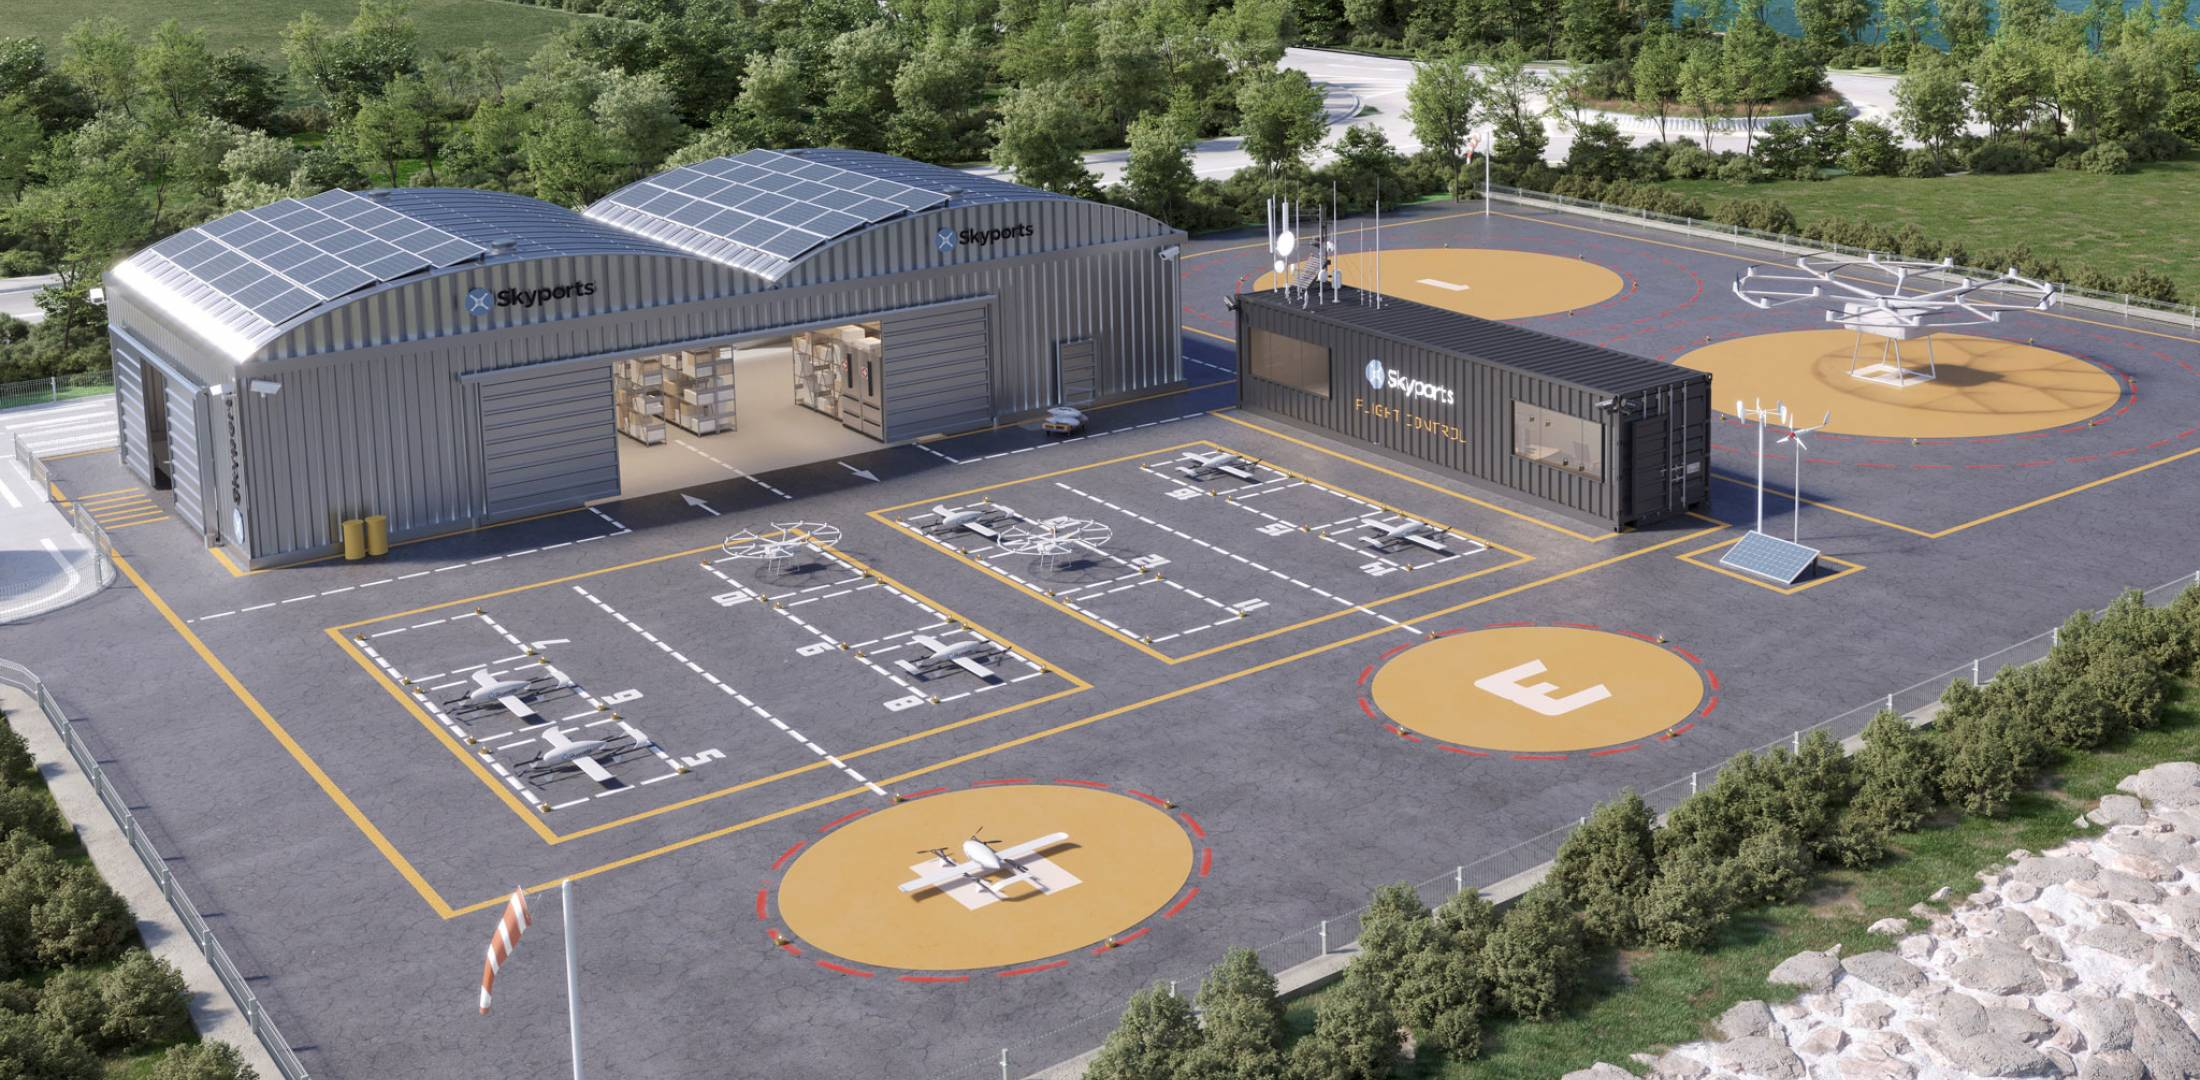 artist rendering of planned vertiport at Shannon Airport